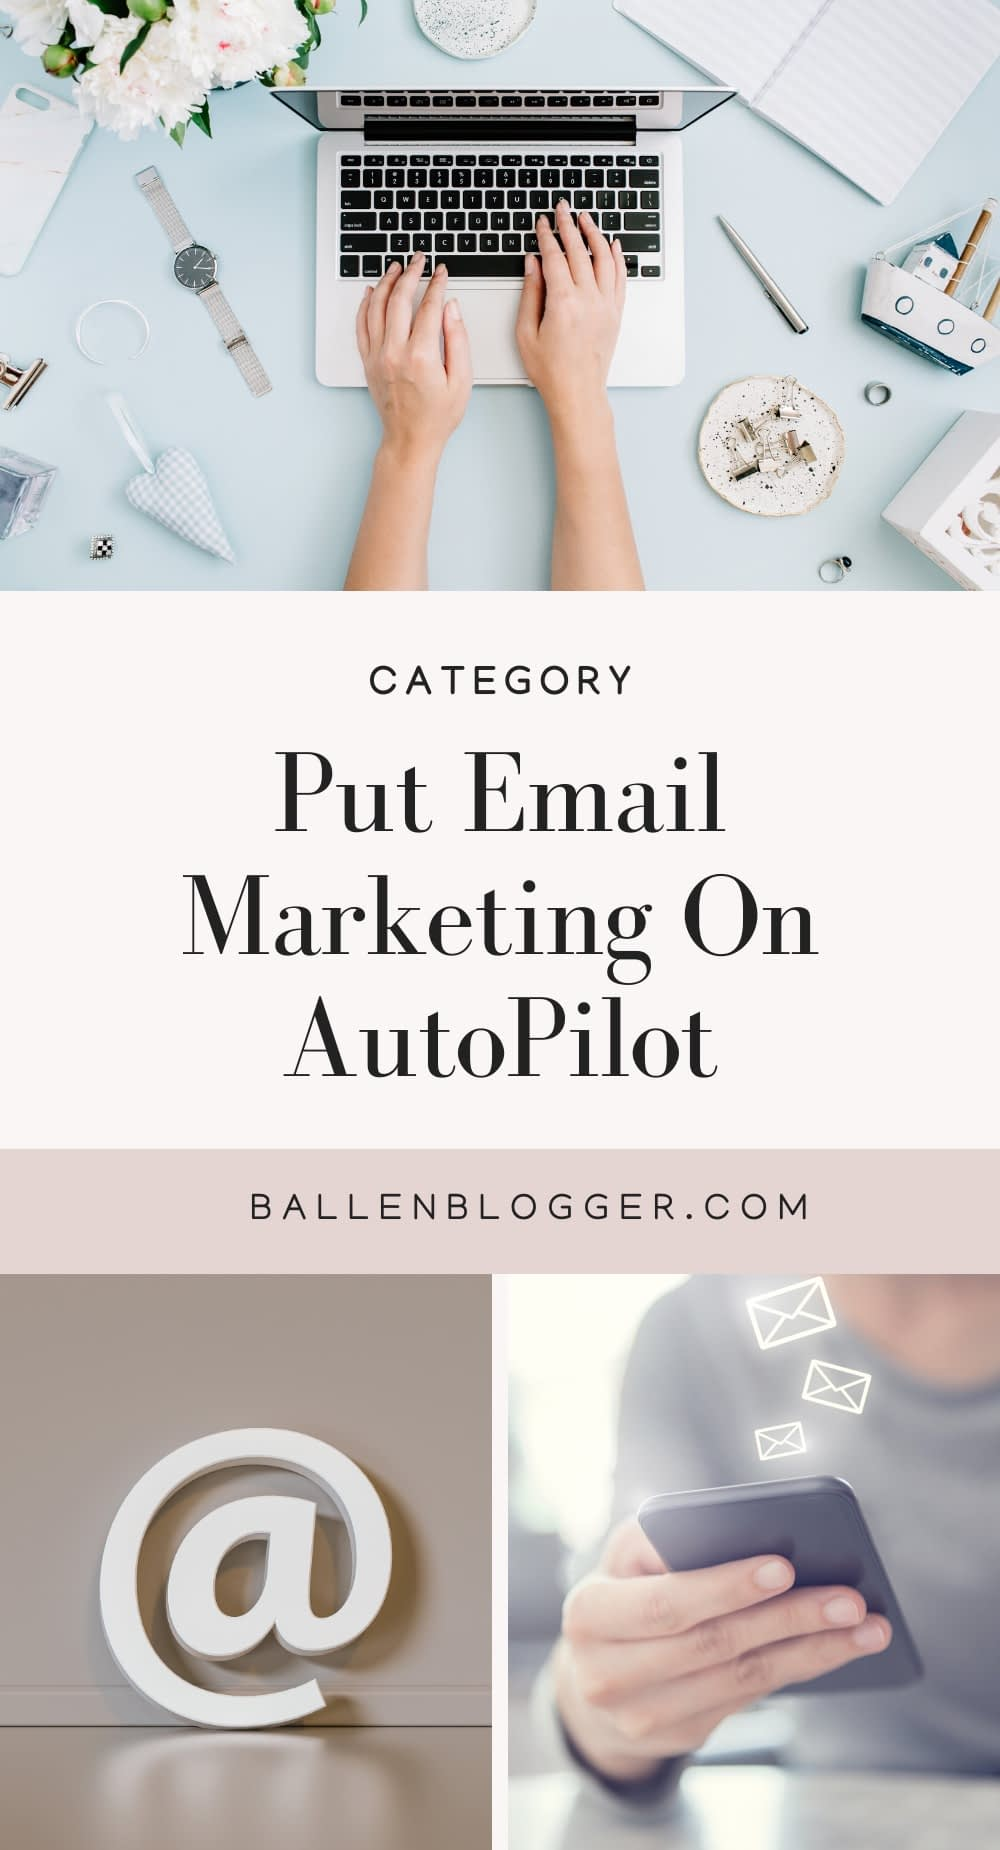 There are a lot of email marketing and automation tools available. In this post, we are going to compare ConvertKit and ActiveCampaign.